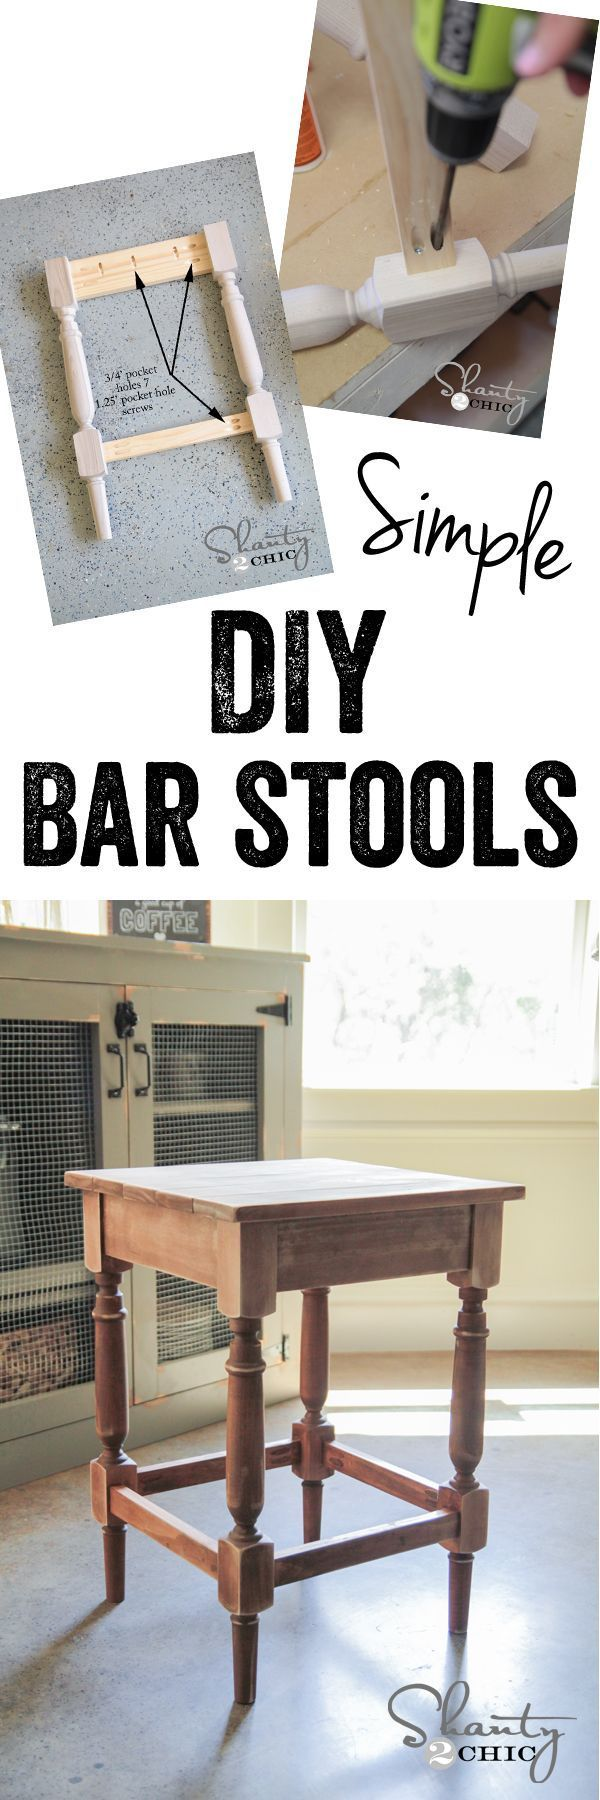 Diy Furniture : LOVE These DIY Bar Stools Free Plans For Tall Or Short  Stools!